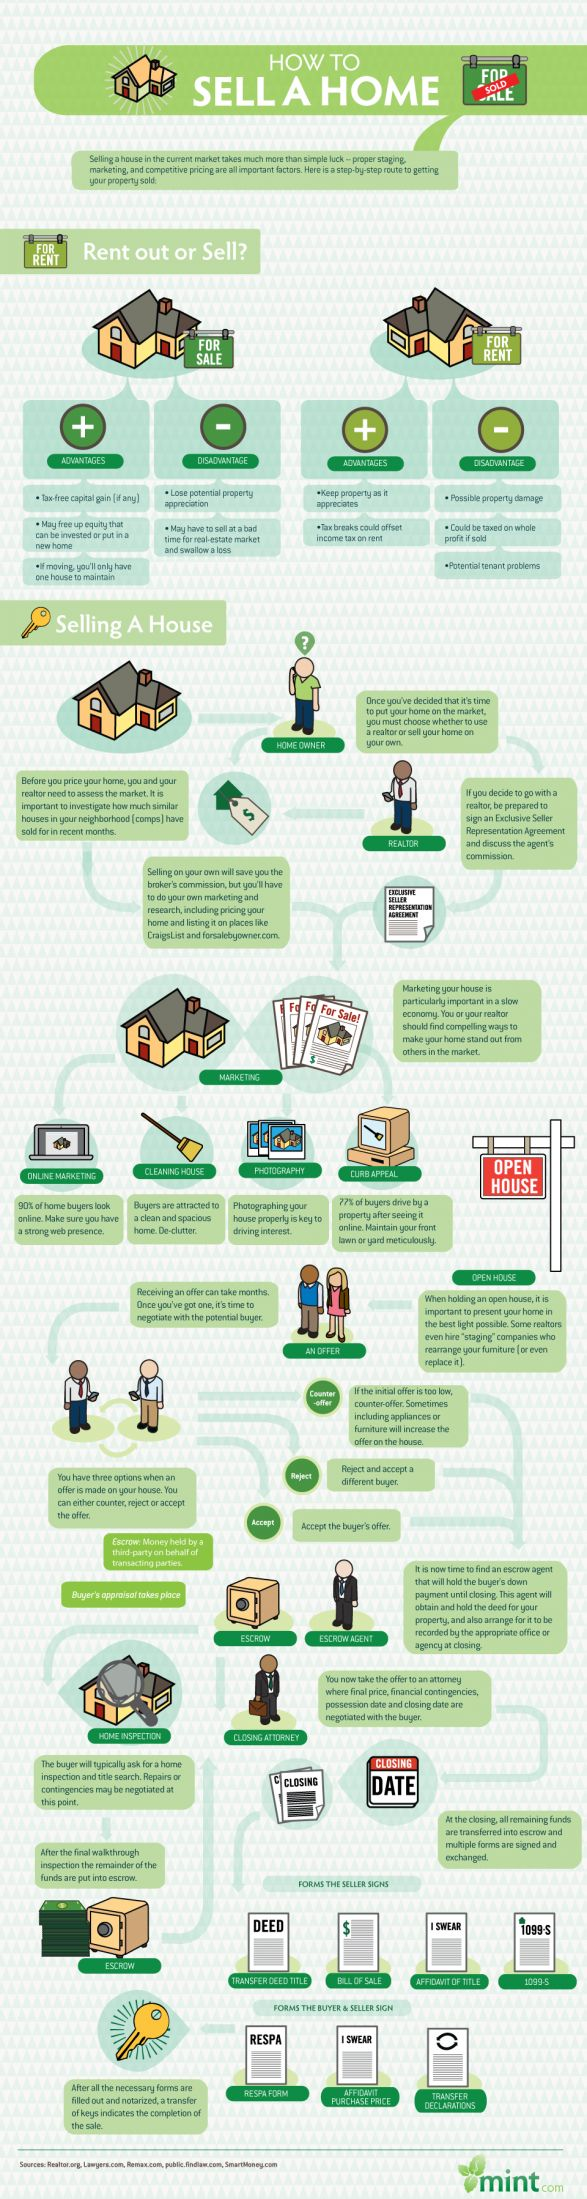 Some important tips to look at when thinking of selling a home.  Are you ready?  For more info visit http://www.homesthatclick.com.